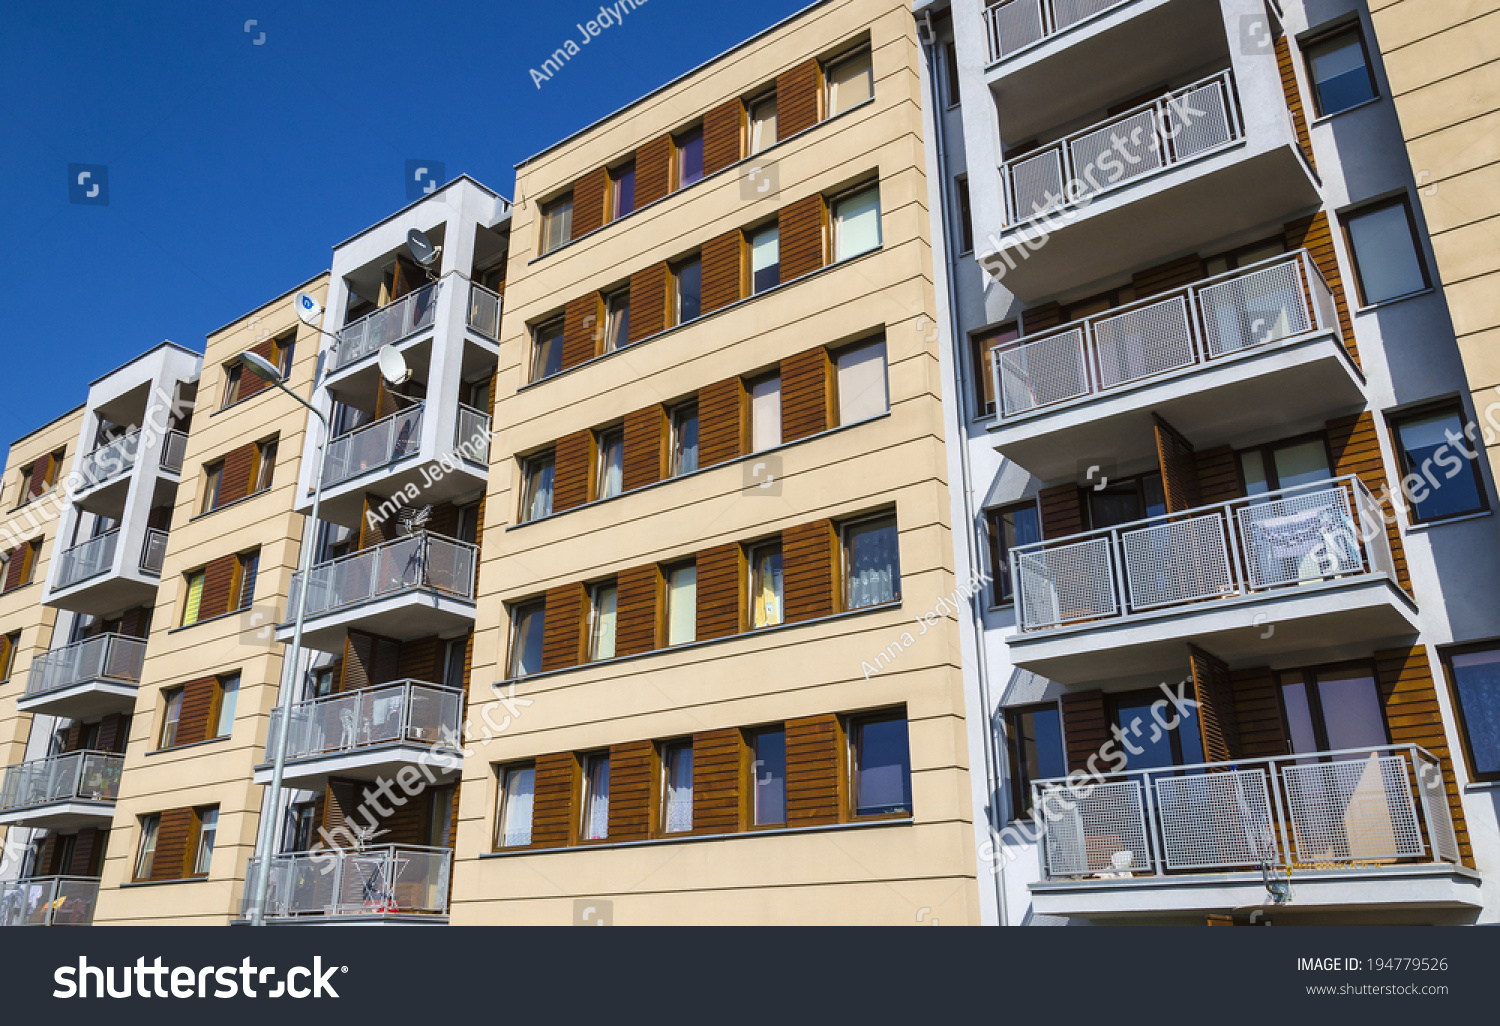 Architectural Background Of A Modern Stylish Apartment Building White Facade